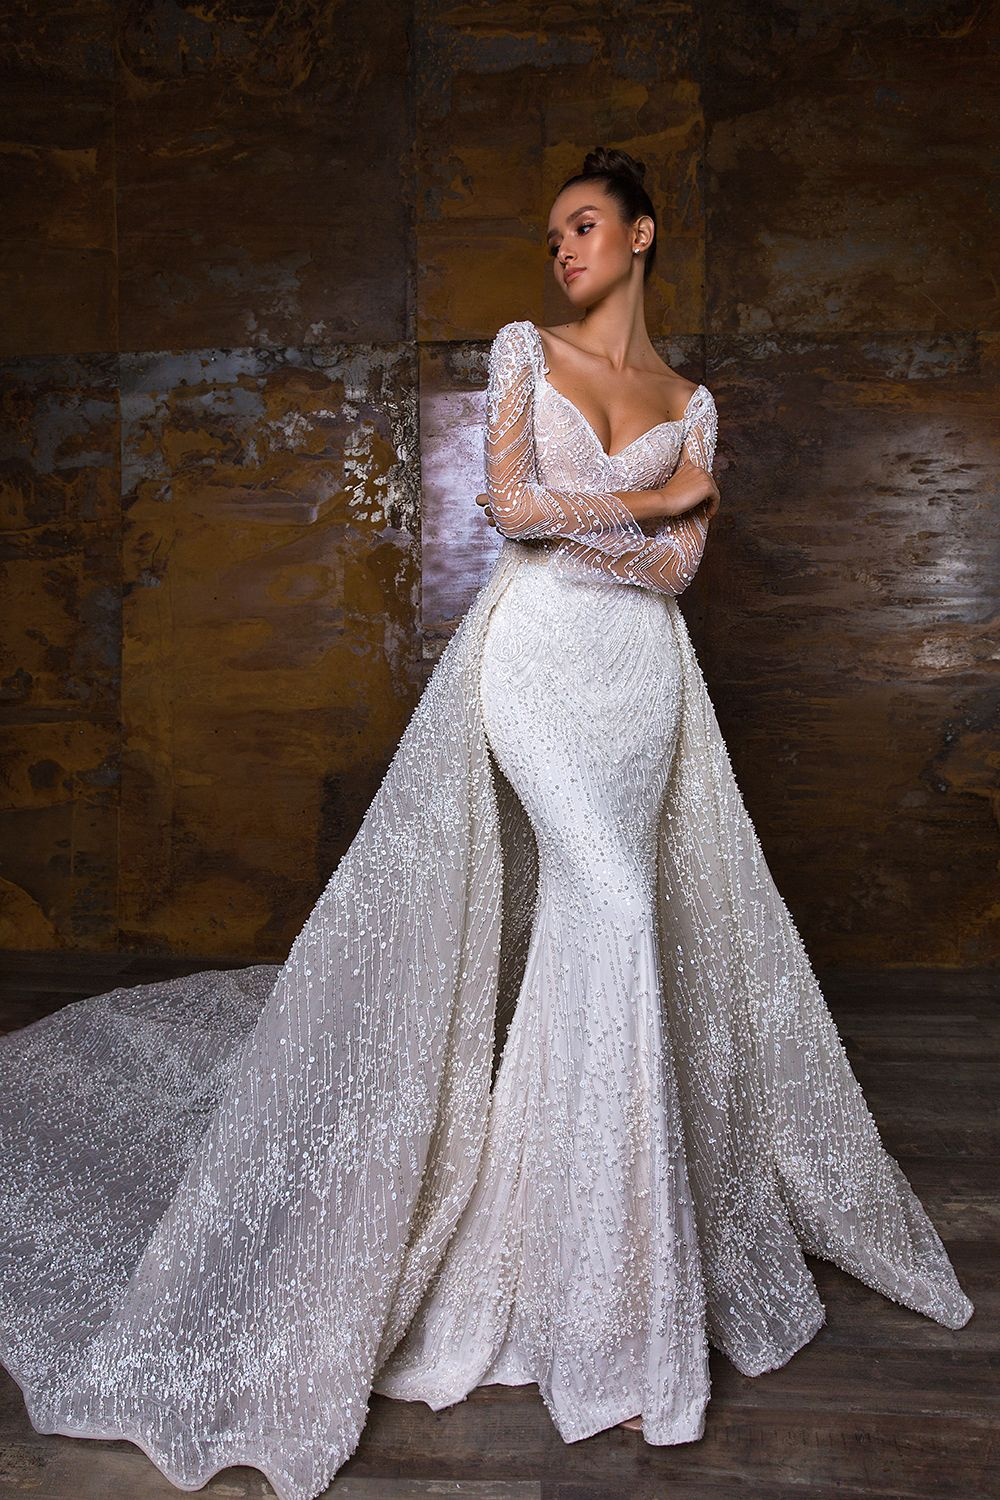 54172f278b27 Crystal Design  PENELOPE dress. A sophisticated long sleeve column dress  with removable overskirt.